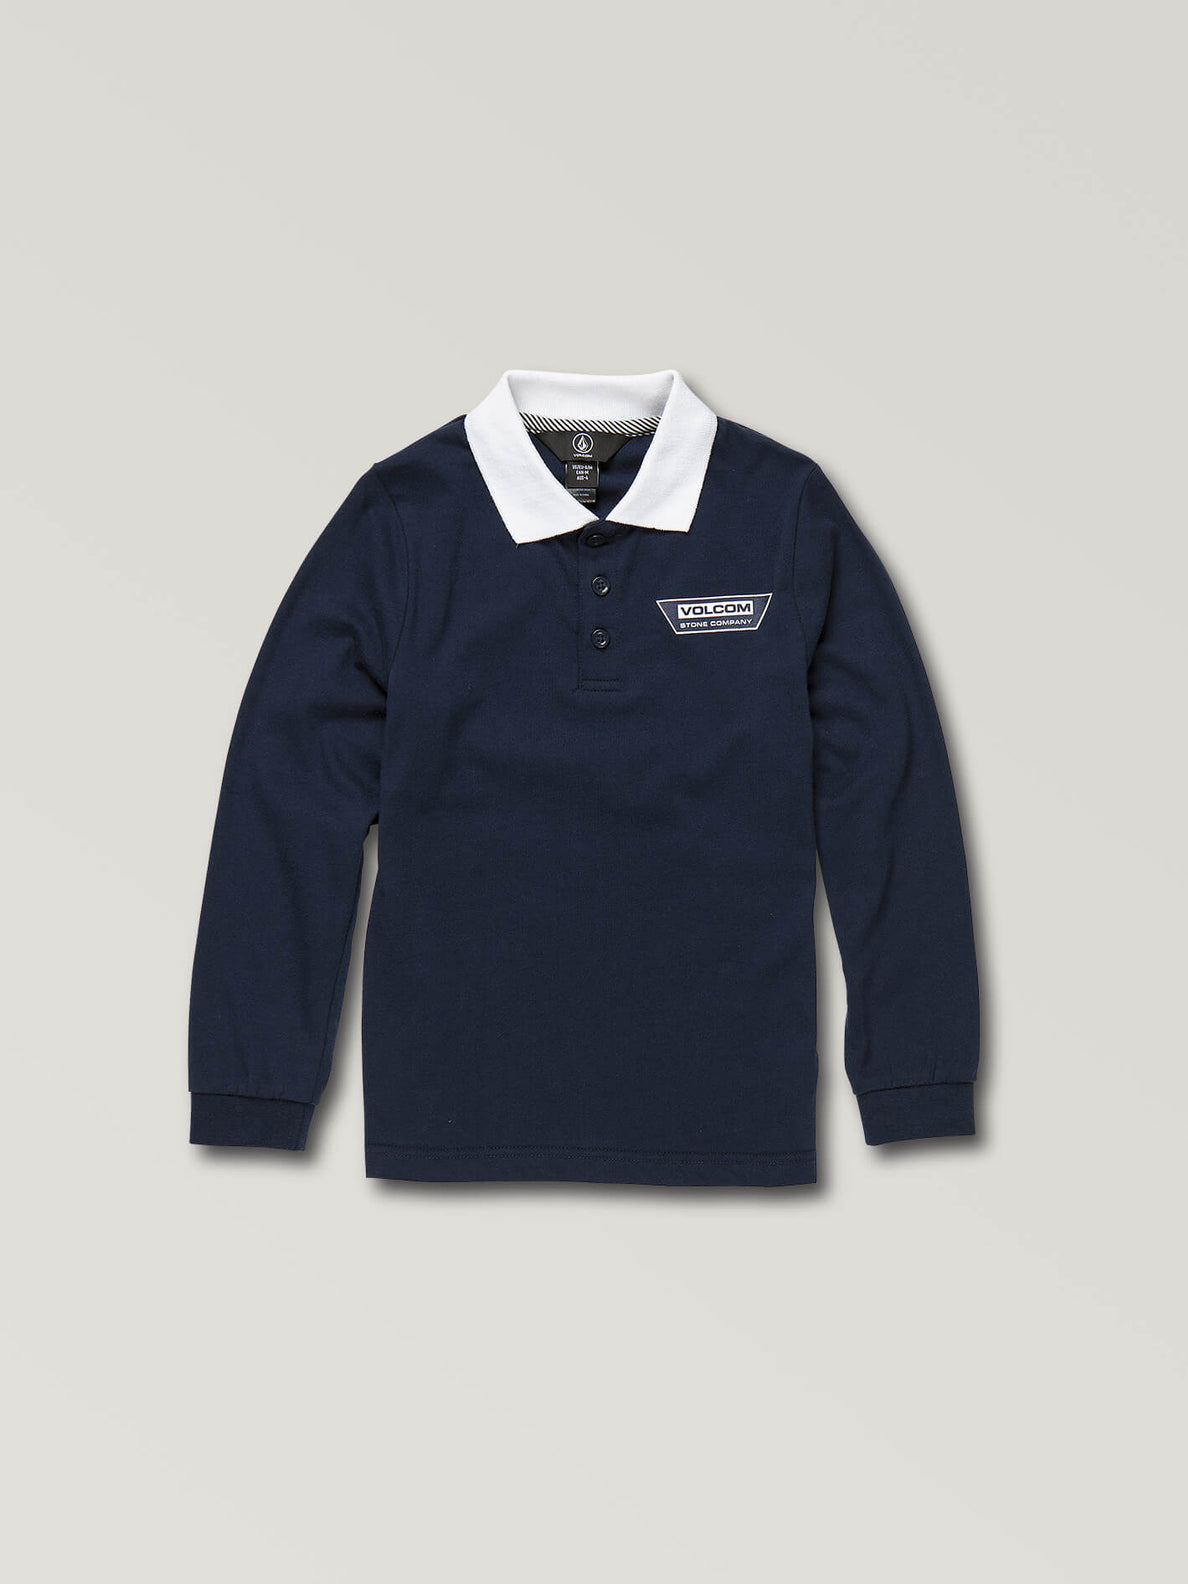 Little Boys Belmont Long Sleeve Polo In Navy, Front View